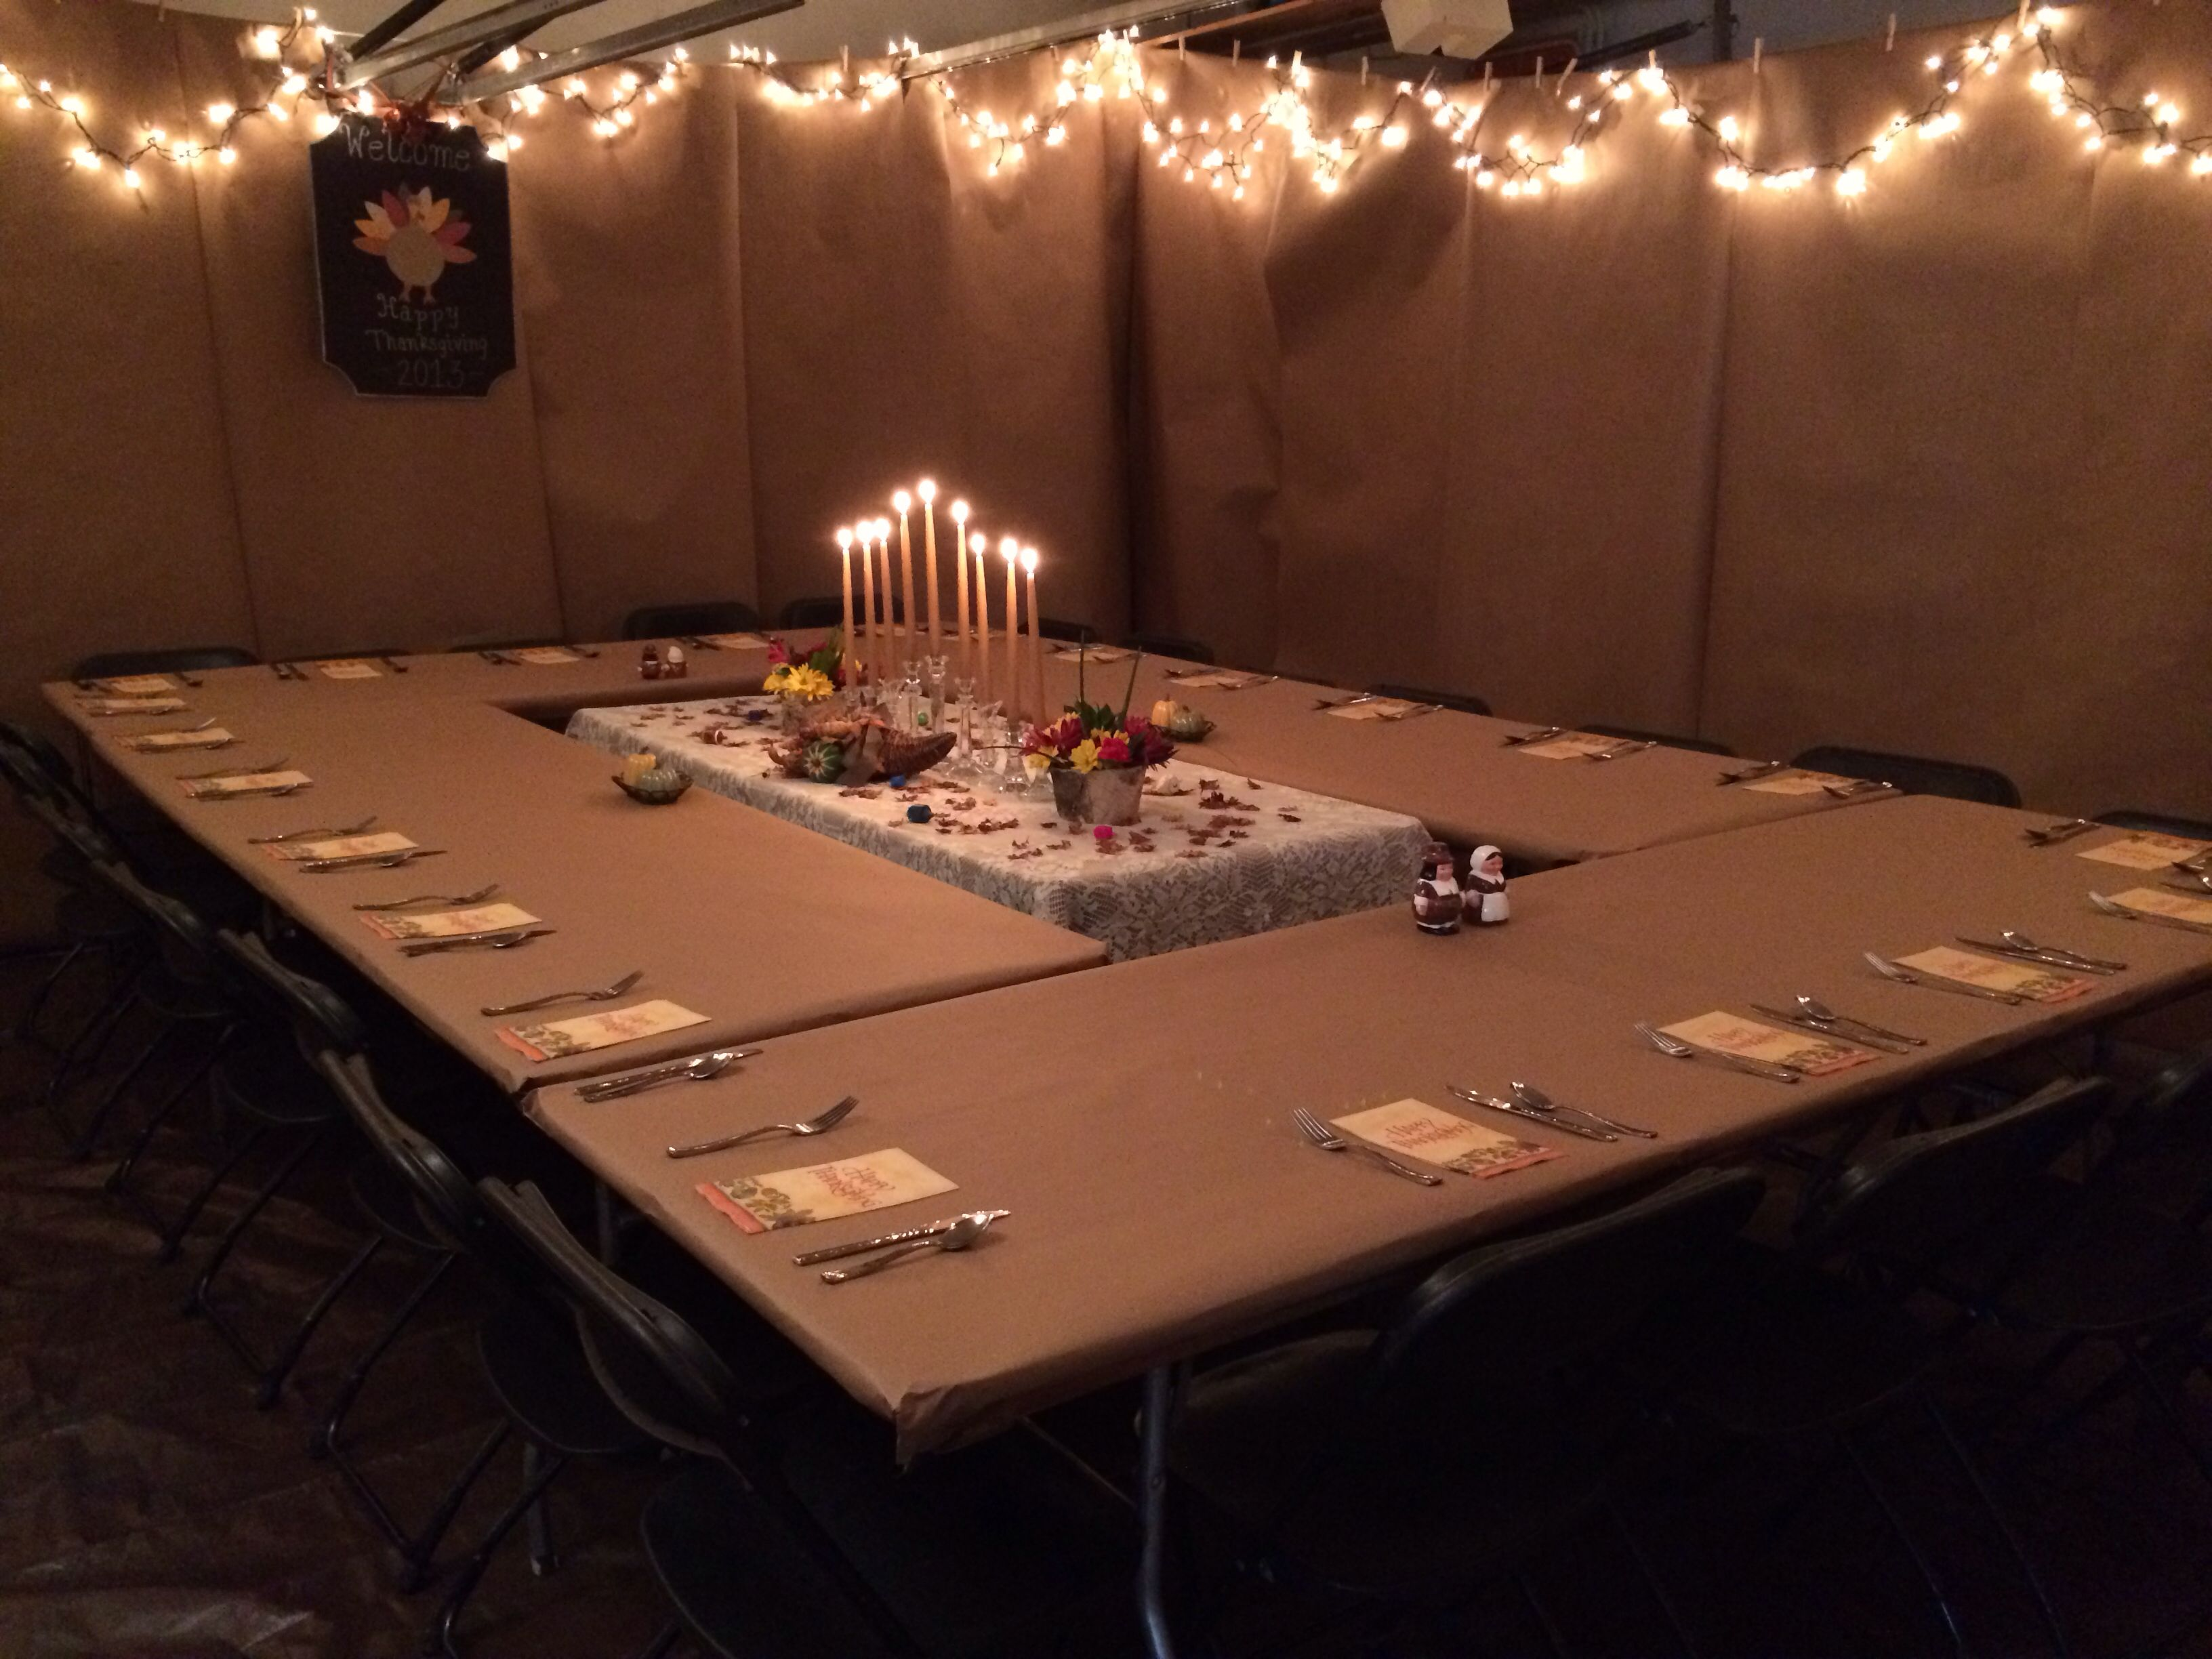 Cool Dinner Party Ideas Part - 27: Great Idea For Large Dinner Party In The Garage